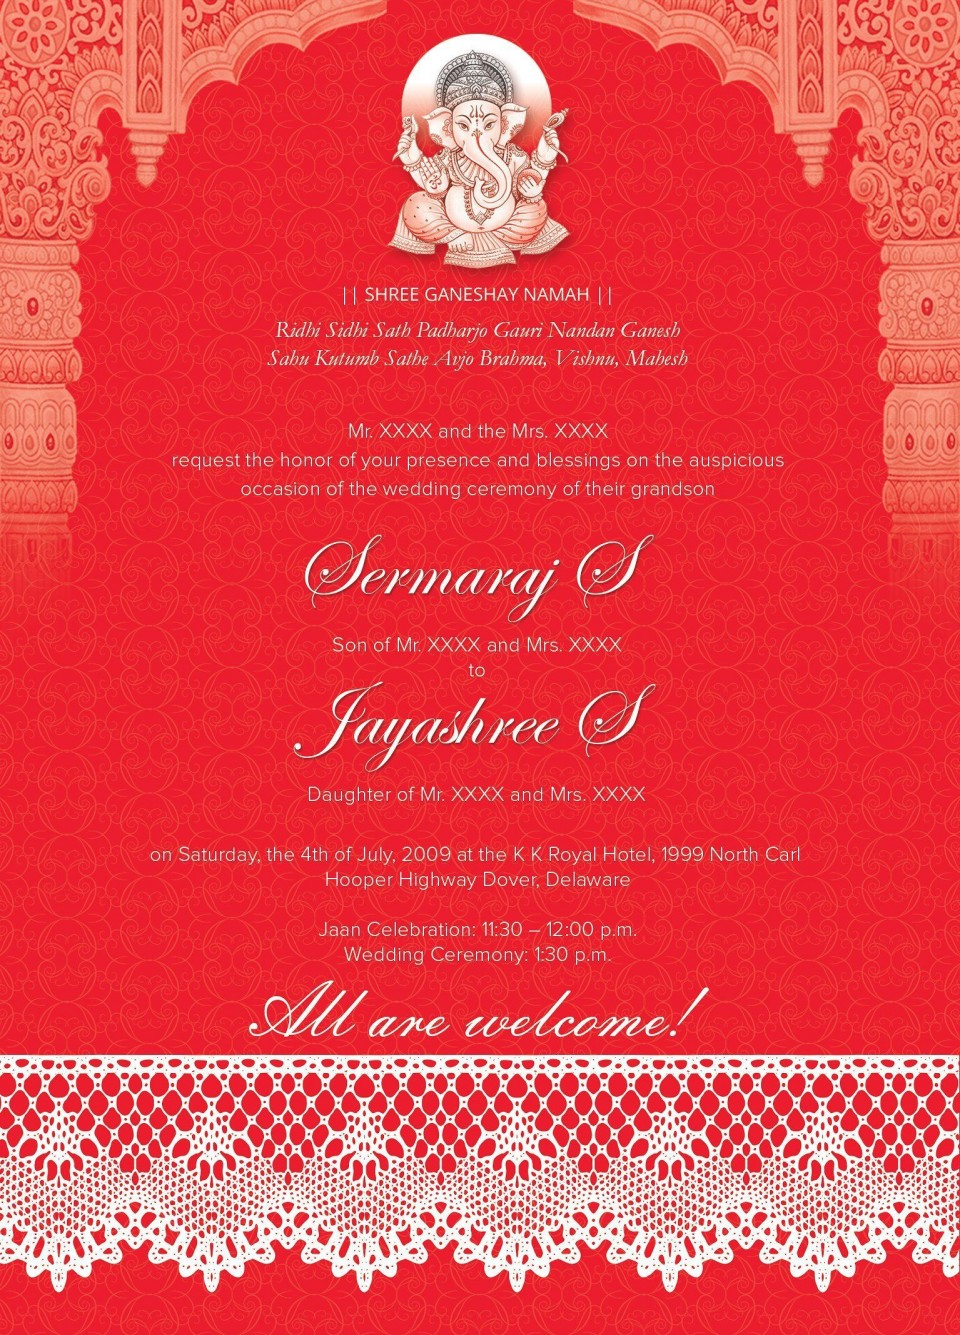 005 Marvelou Free Online Indian Wedding Invitation Card Template Image 960